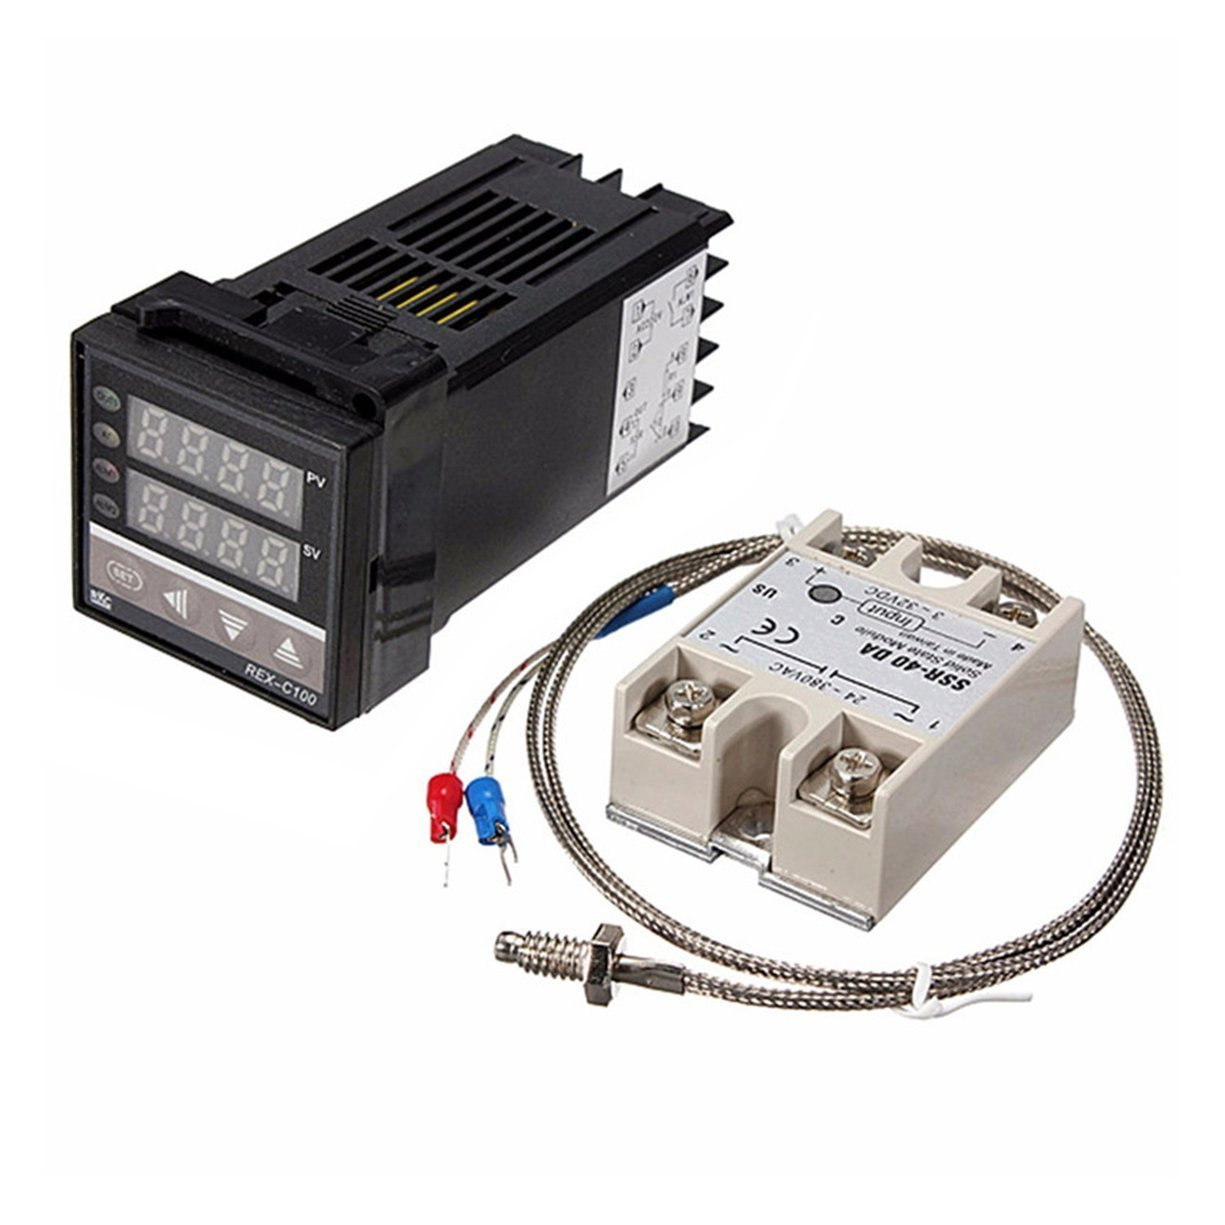 Digital 220V PID REX-C100 Temperature Controller with Max.40A SSR and K Thermocouple PID Controller Set with Heat Sink